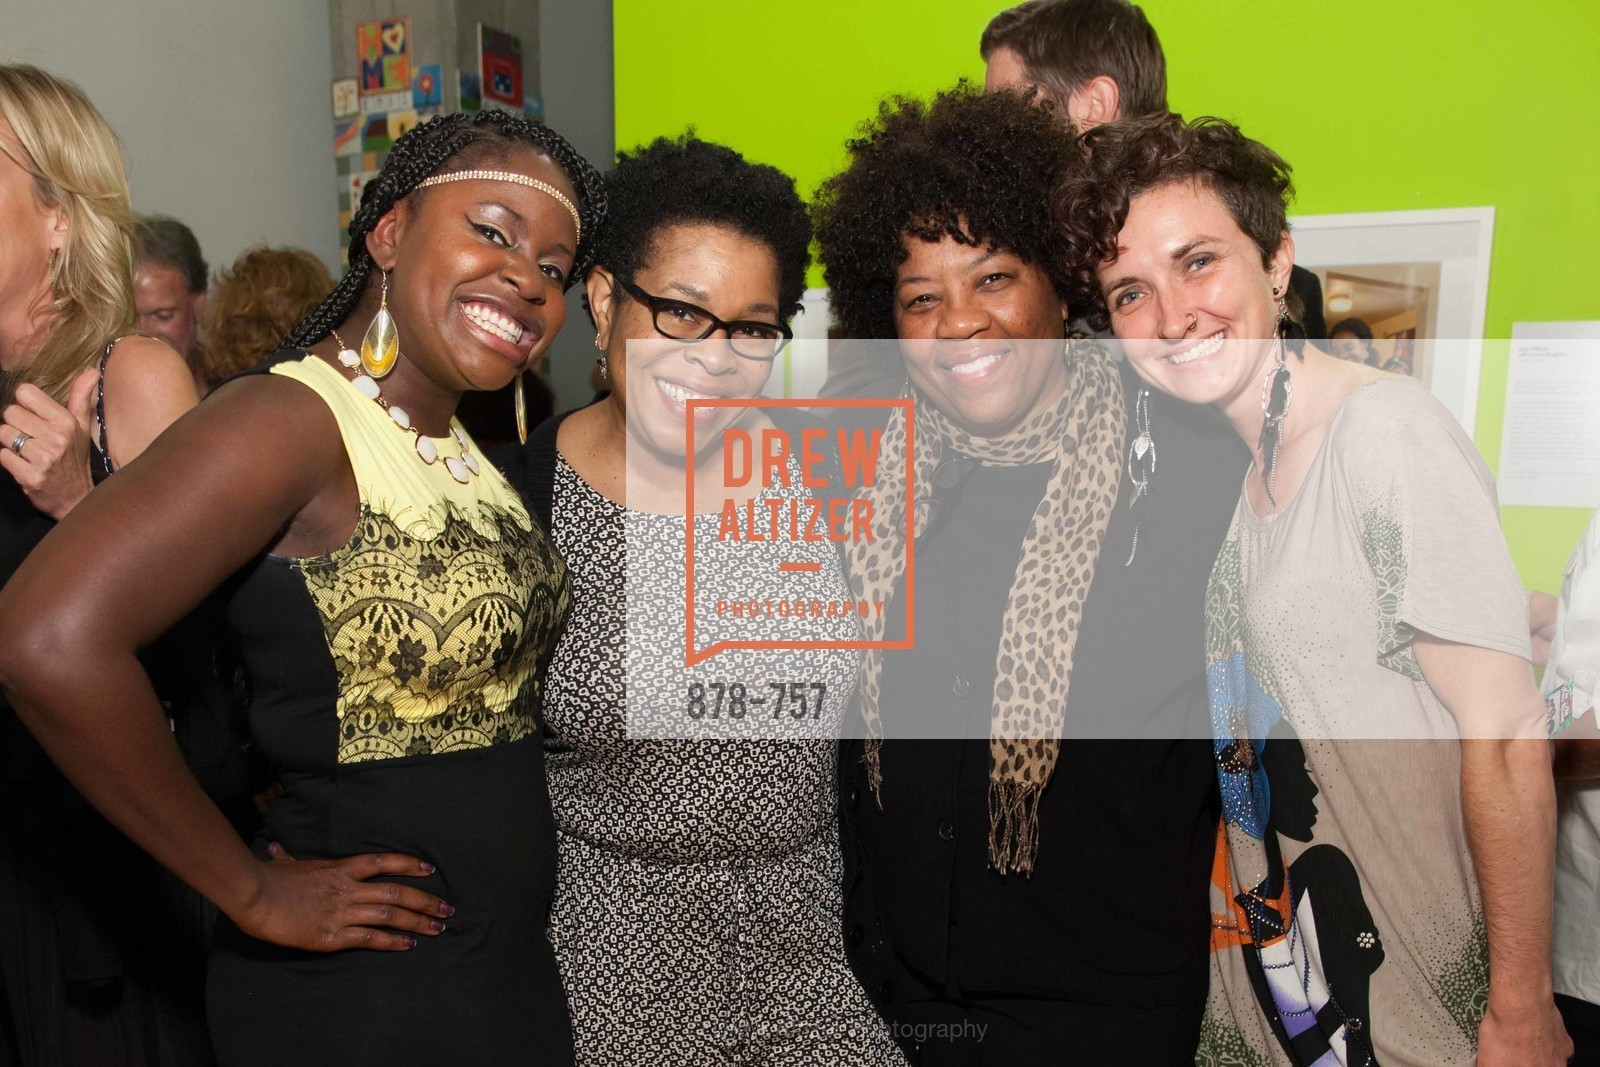 Rachel Solstice, Regina Solstice, Calenthia Crowdy, Joanna Shank, HOMELESS PRENATAL PROGRAM Our House, Our Mission Gala, Homeless Prenatal Program. 2500 18th St, May 31st, 2015,Drew Altizer, Drew Altizer Photography, full-service agency, private events, San Francisco photographer, photographer california